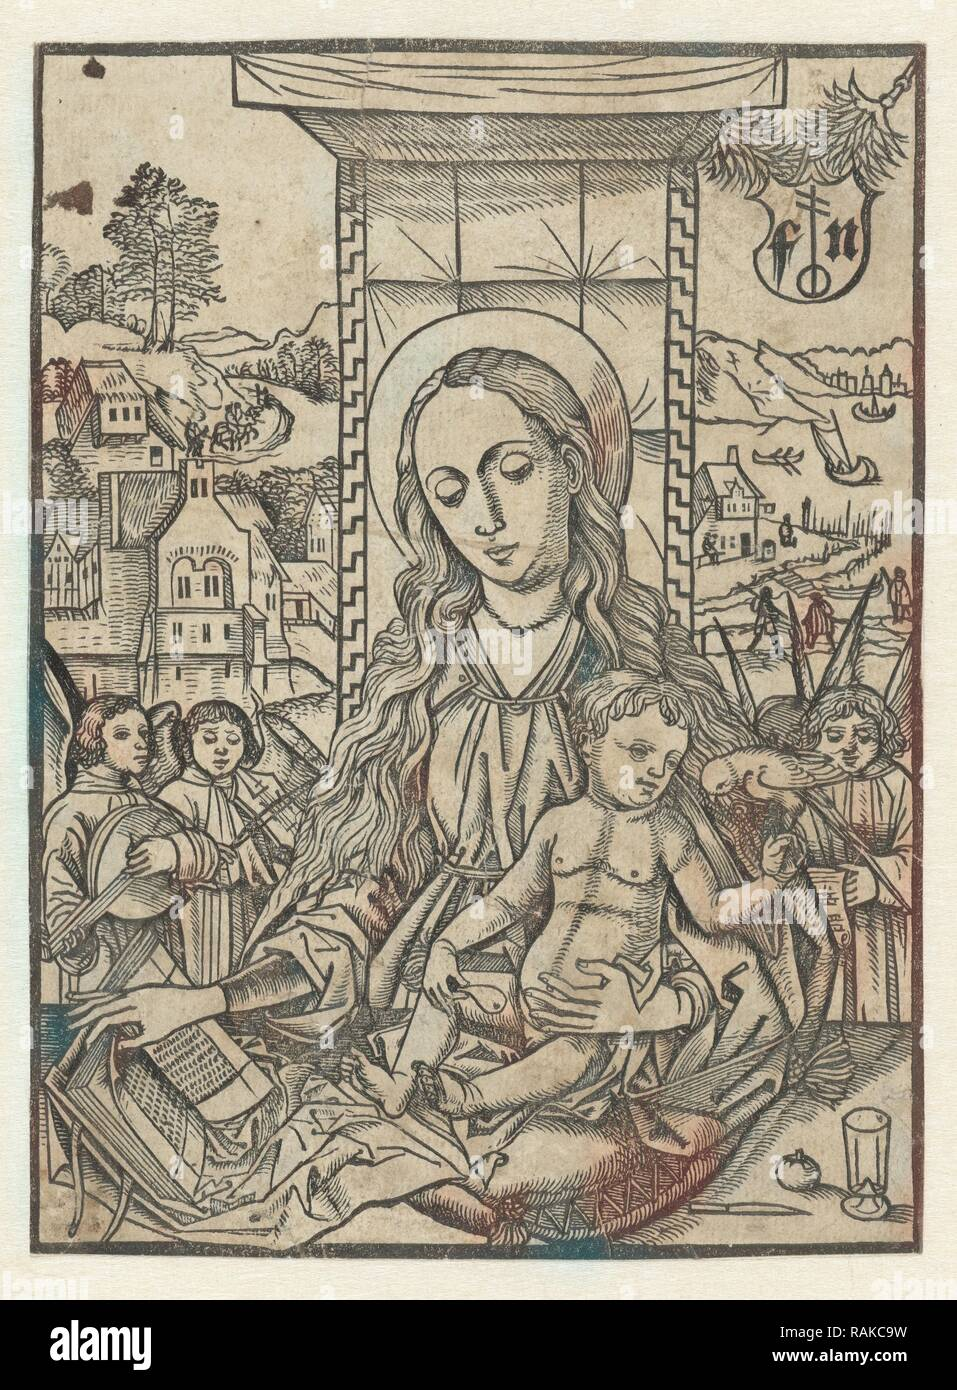 Mary and child with parrot, print maker: Monogrammist FN, Martin Schongauer, 1490 - 1500. Reimagined - Stock Image